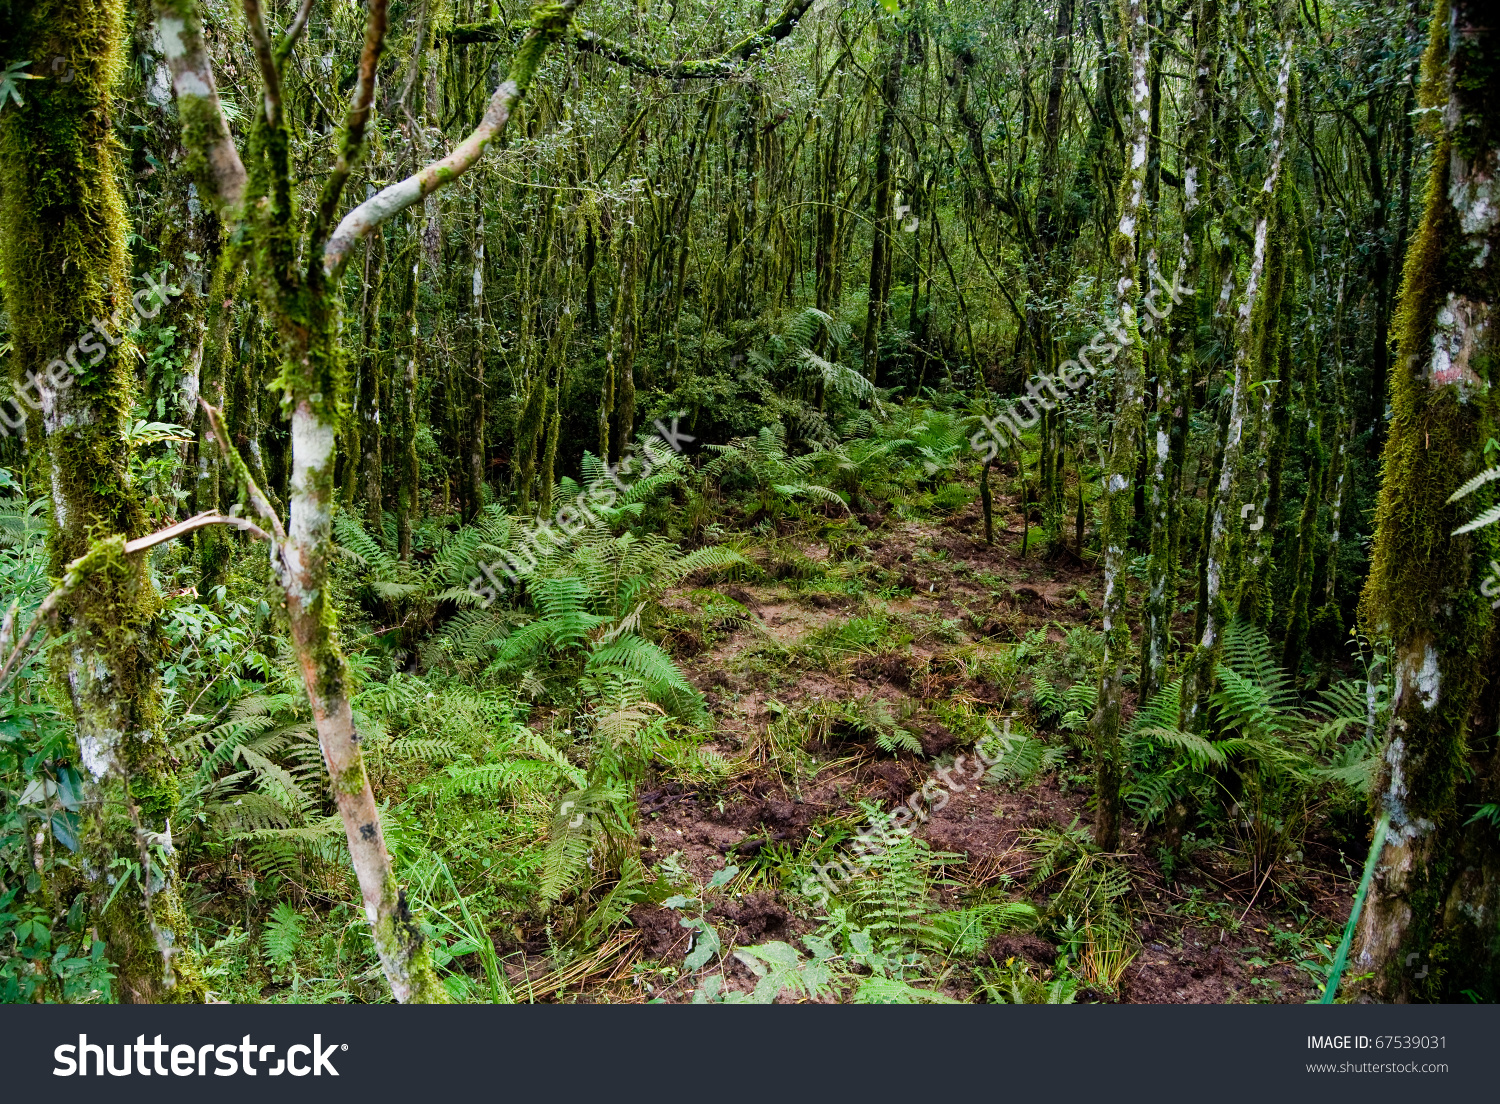 Internal View Atlantic Forest Vegetation On Stock Photo 67539031.